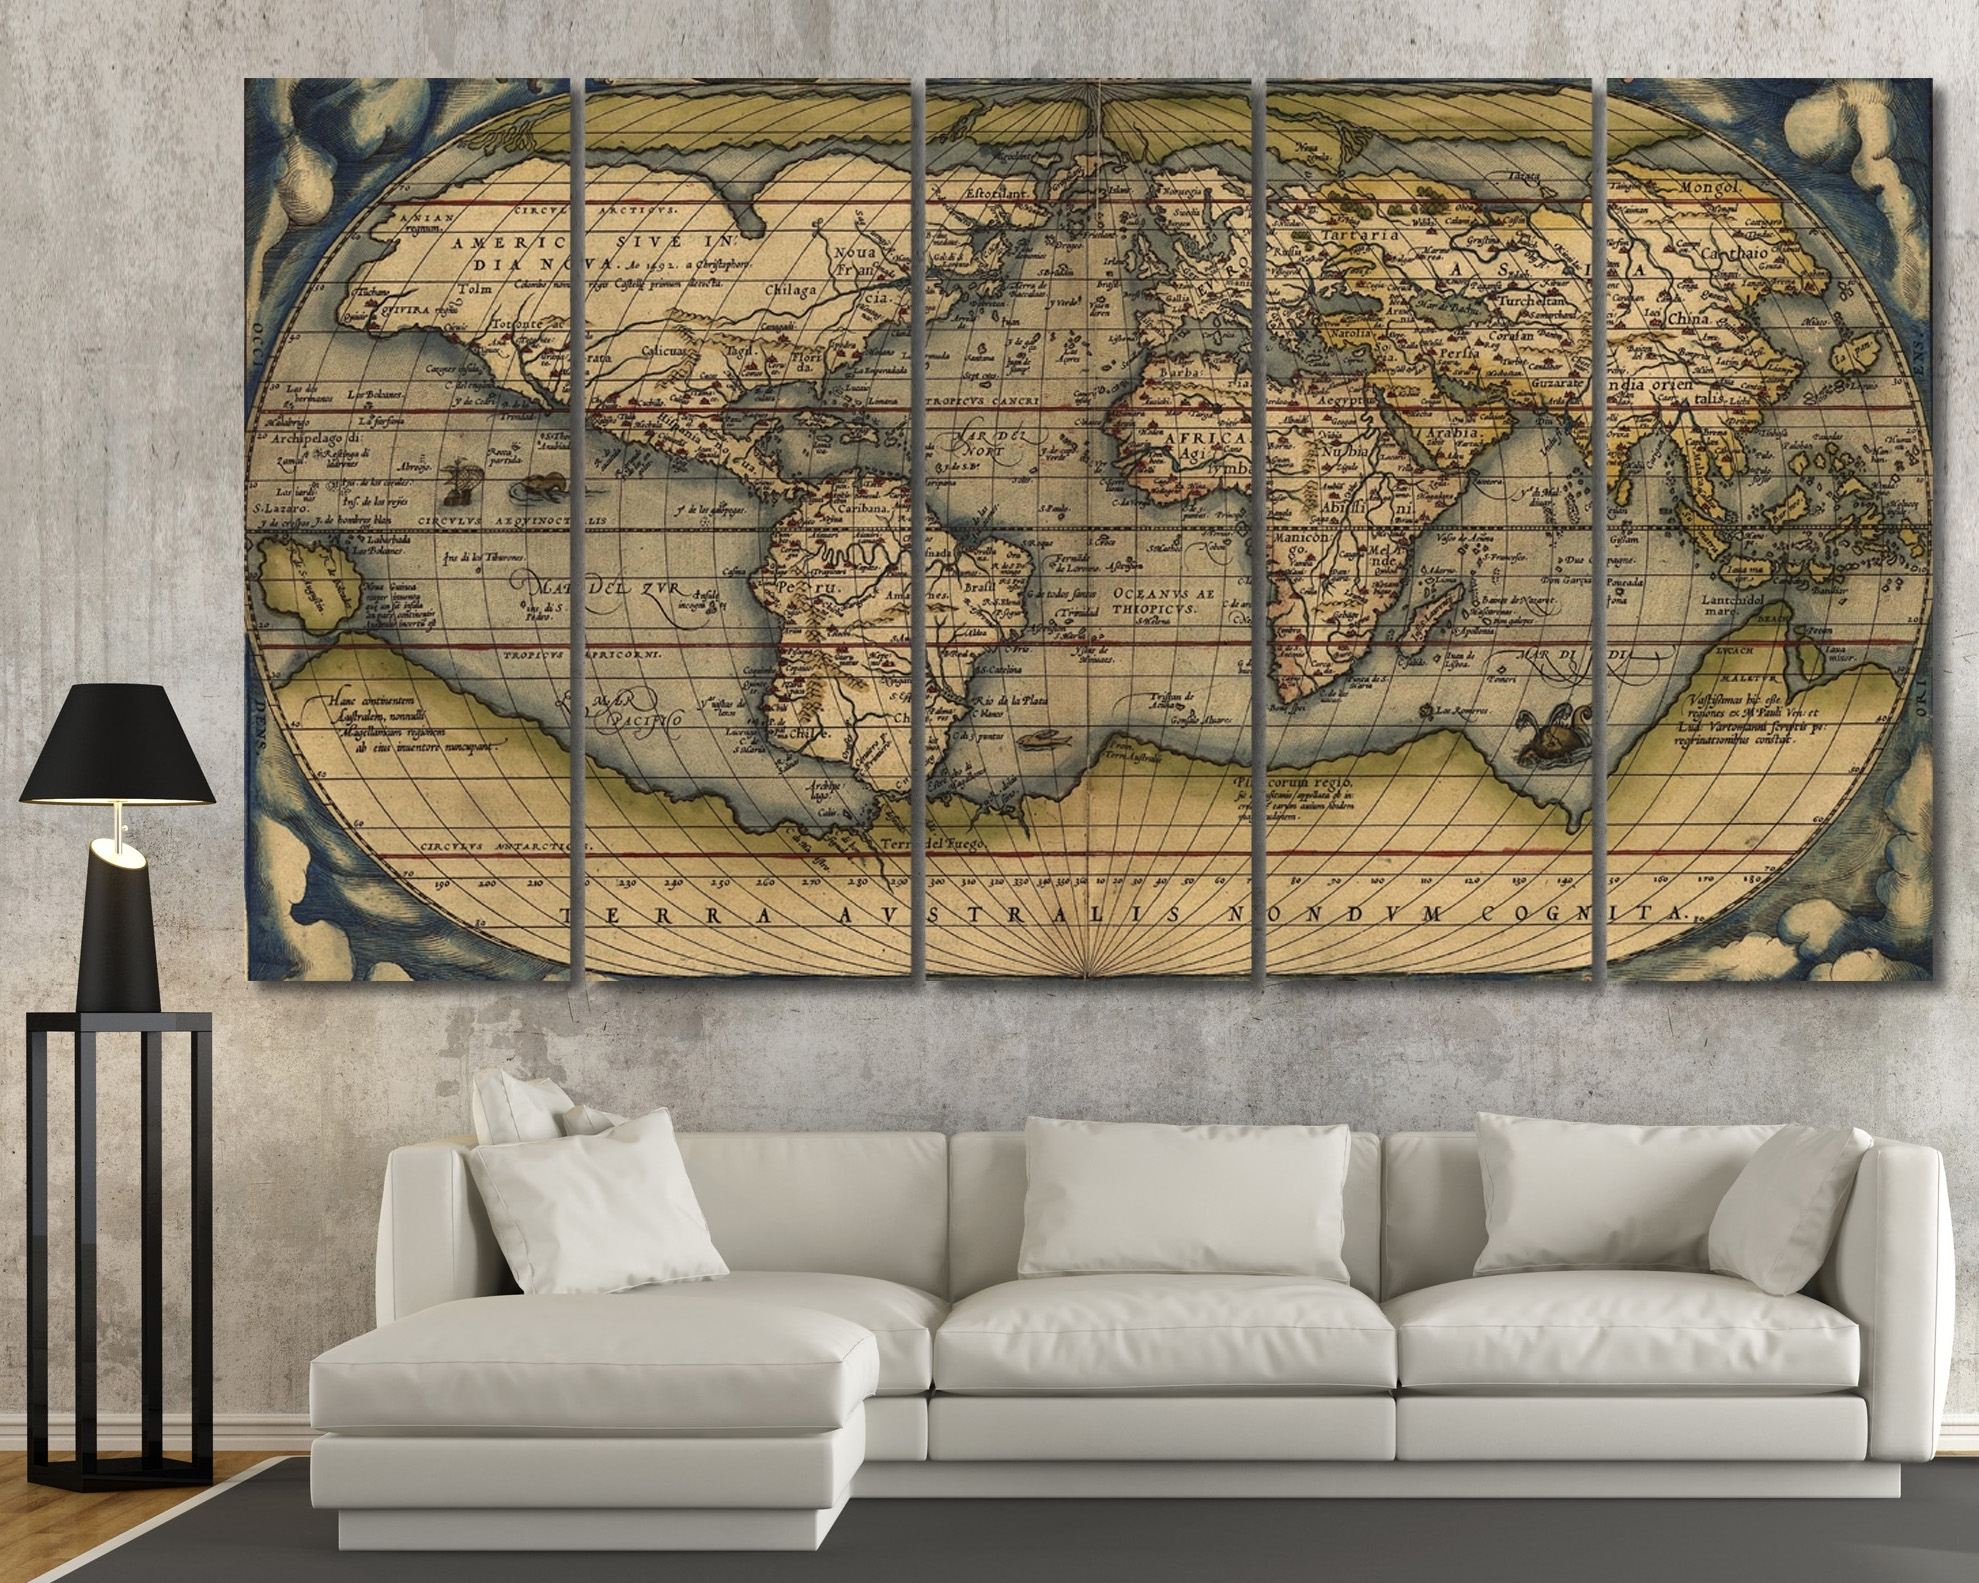 Large Vintage Wall Art Old World Map At Texelprintart Intended For Current Maps Canvas Wall Art (Gallery 4 of 15)